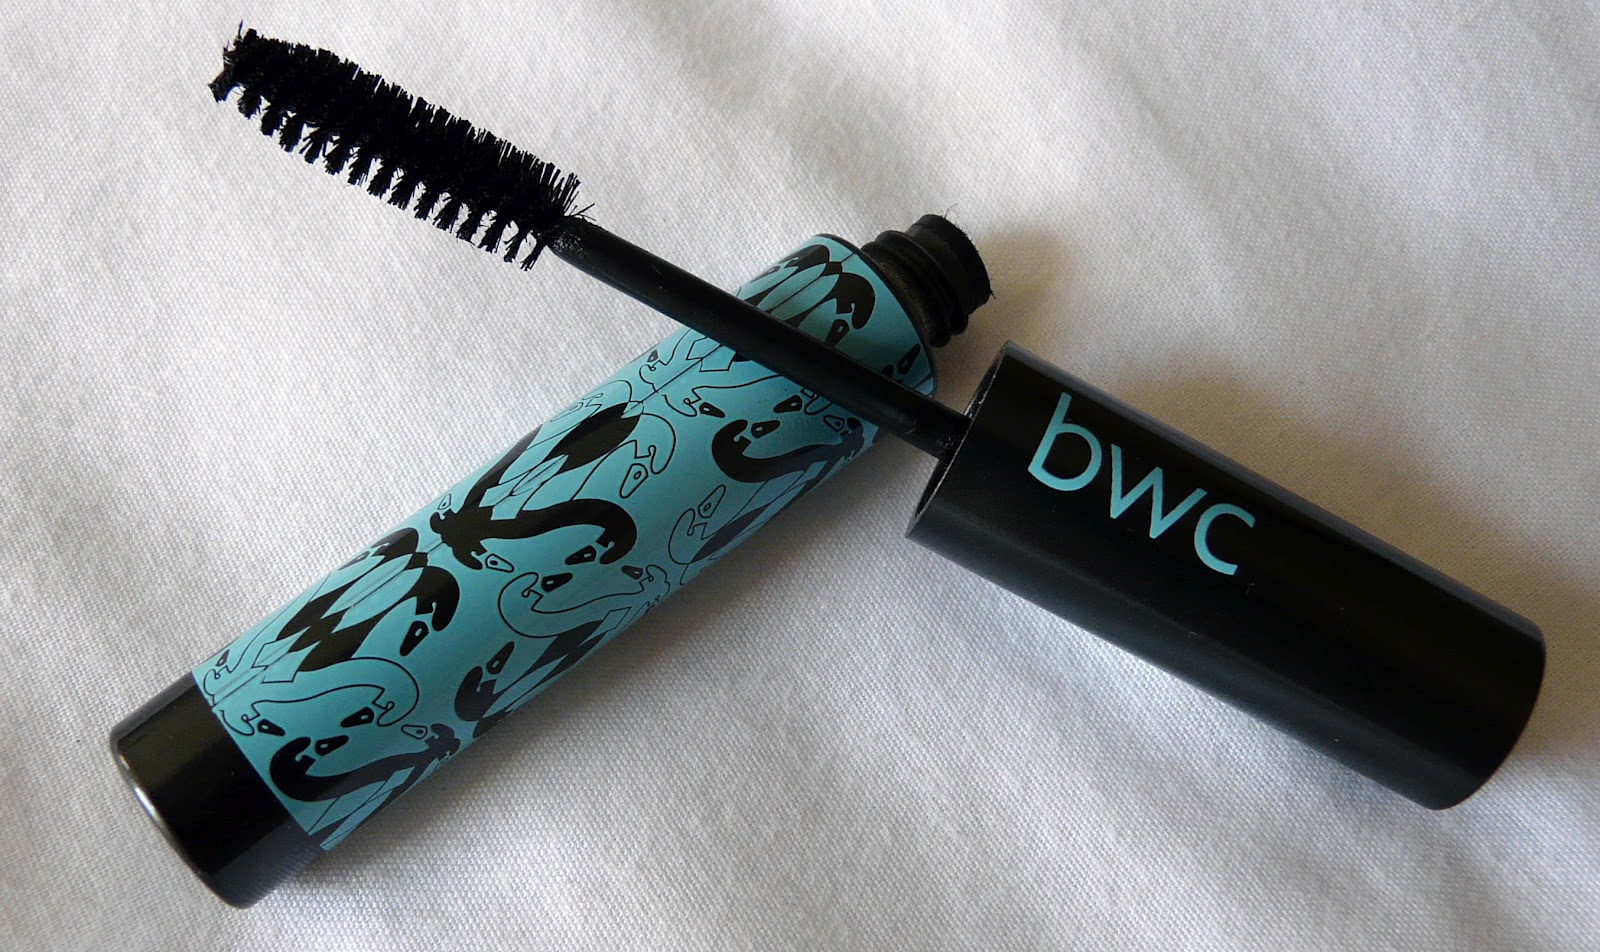 da2fc2af512 I really love this mascara - it makes my lashes look longer, darker and  thicker (I even got complimented on how long they looked!)